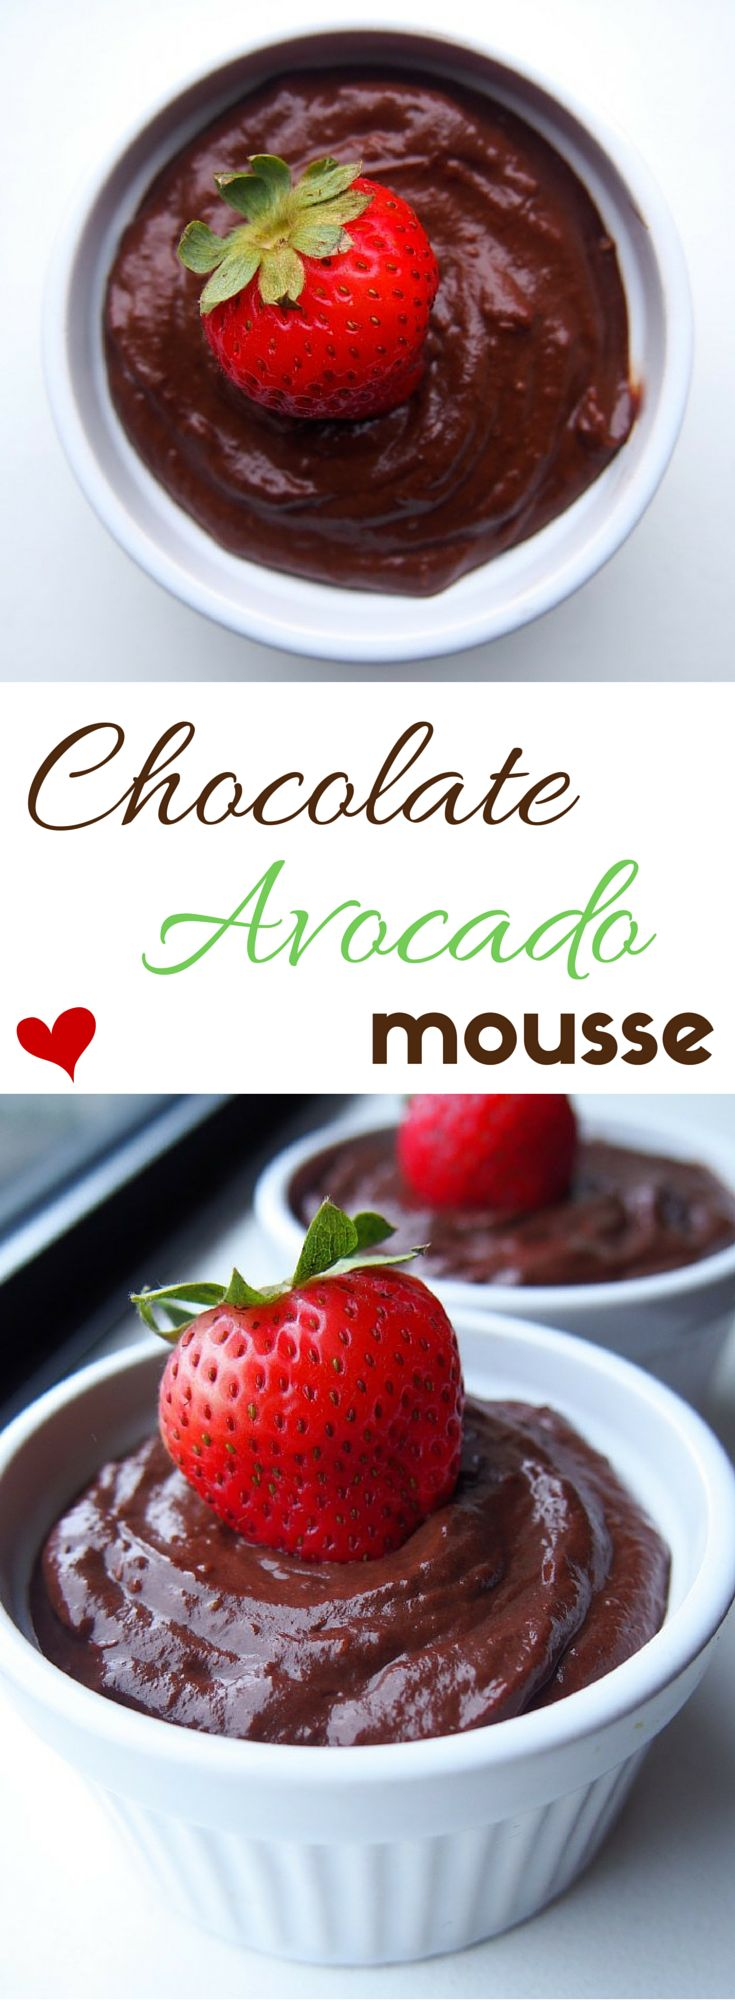 A simple, quick & easy healthy chocolate avocado mousse